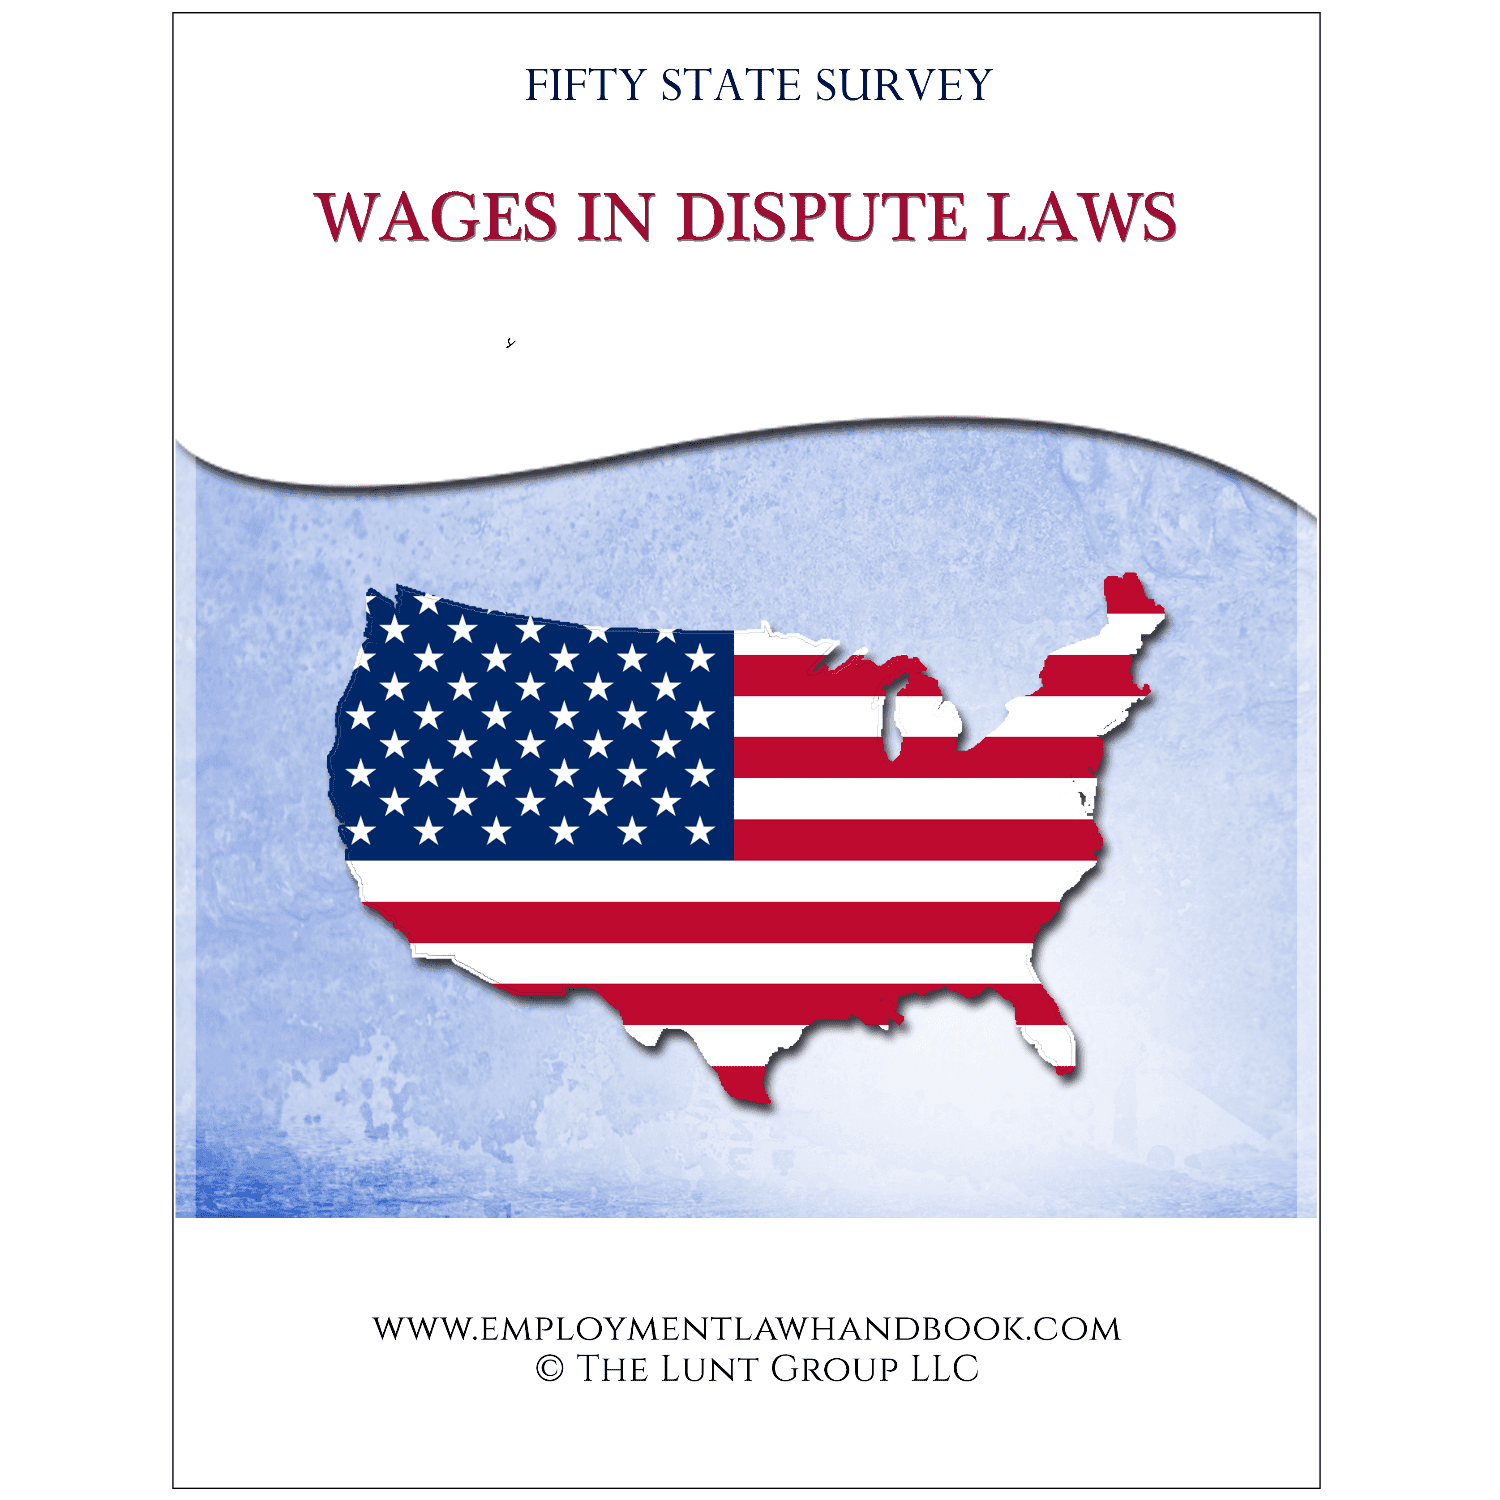 Wages in Dispute Laws - Portrait_sq